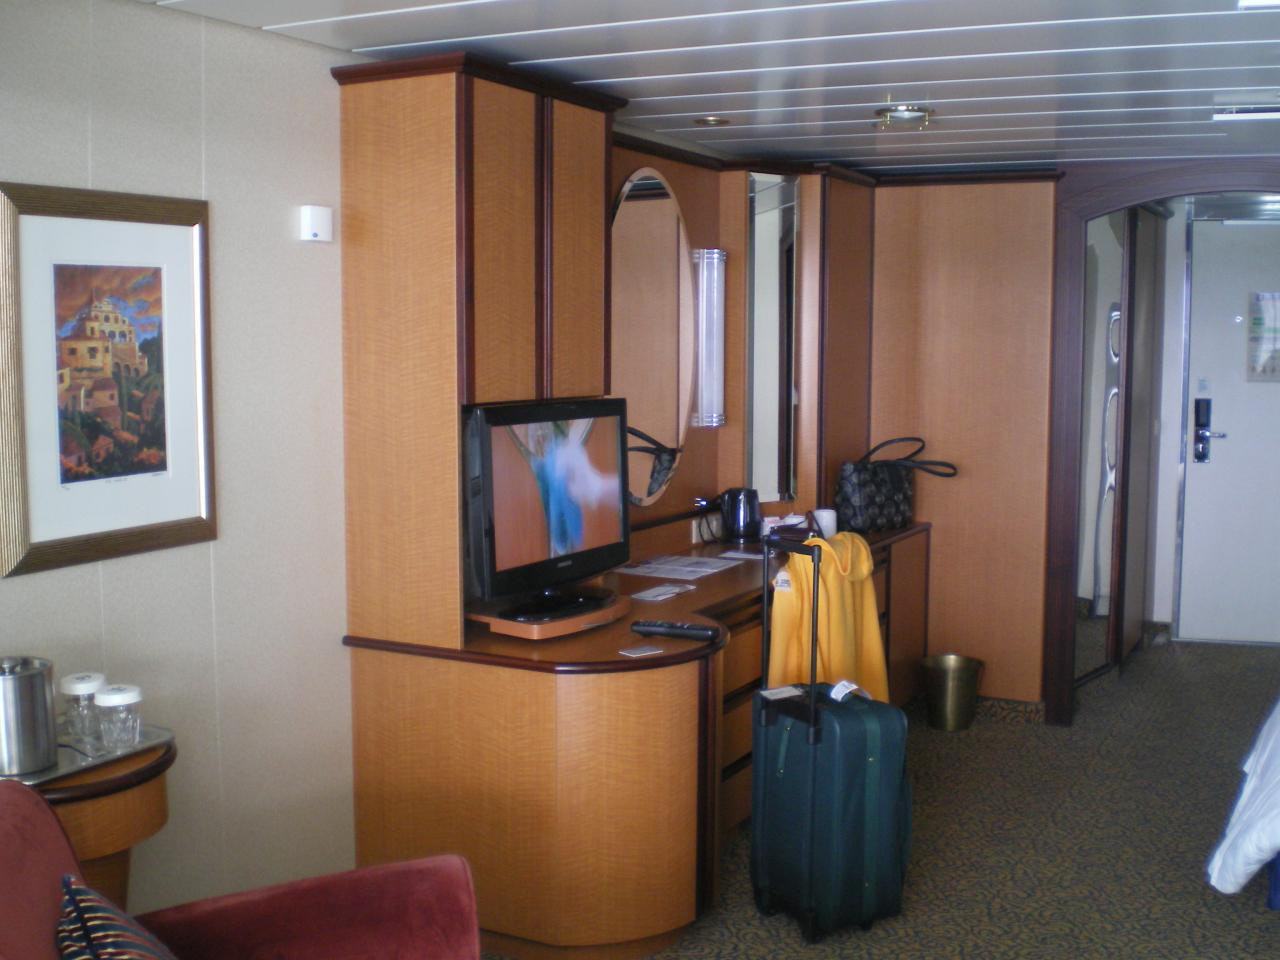 Royal Caribbean Serenade Of The Seas Cruise Review For Cabin 1548